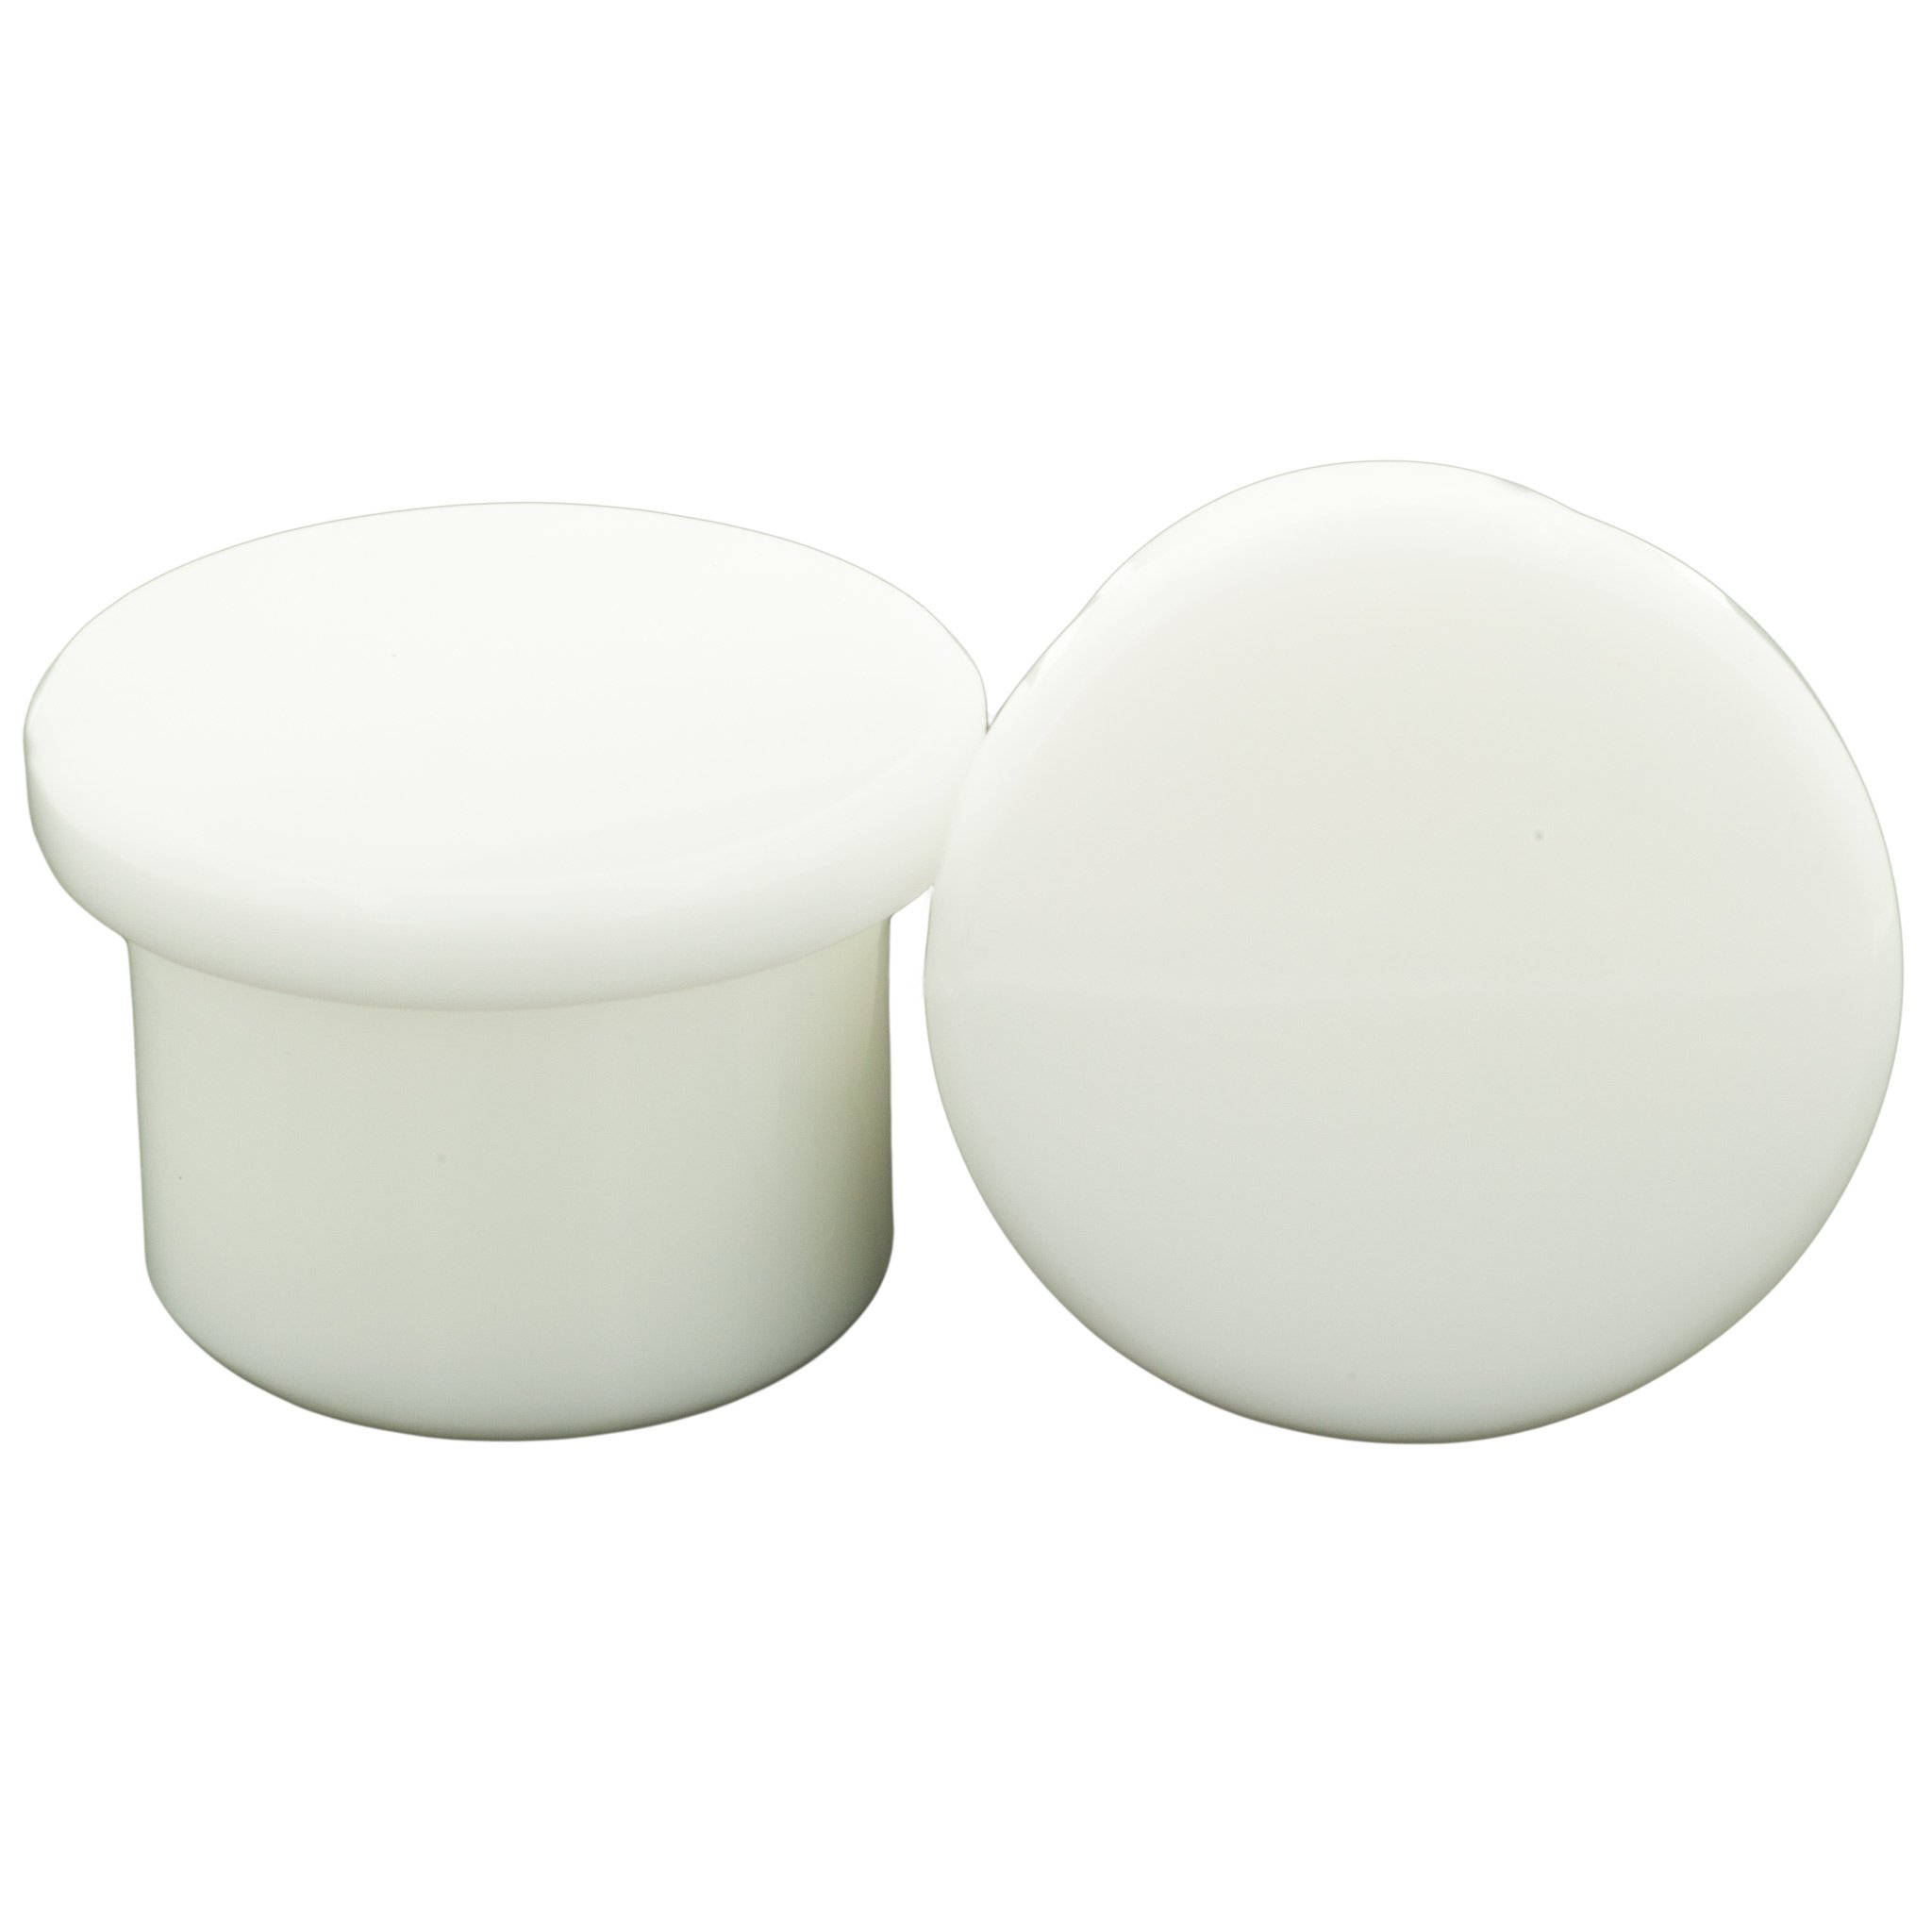 Pair of Glass Single Flared Solid Plugs: 1'', White by Steel Navel Body Jewelry